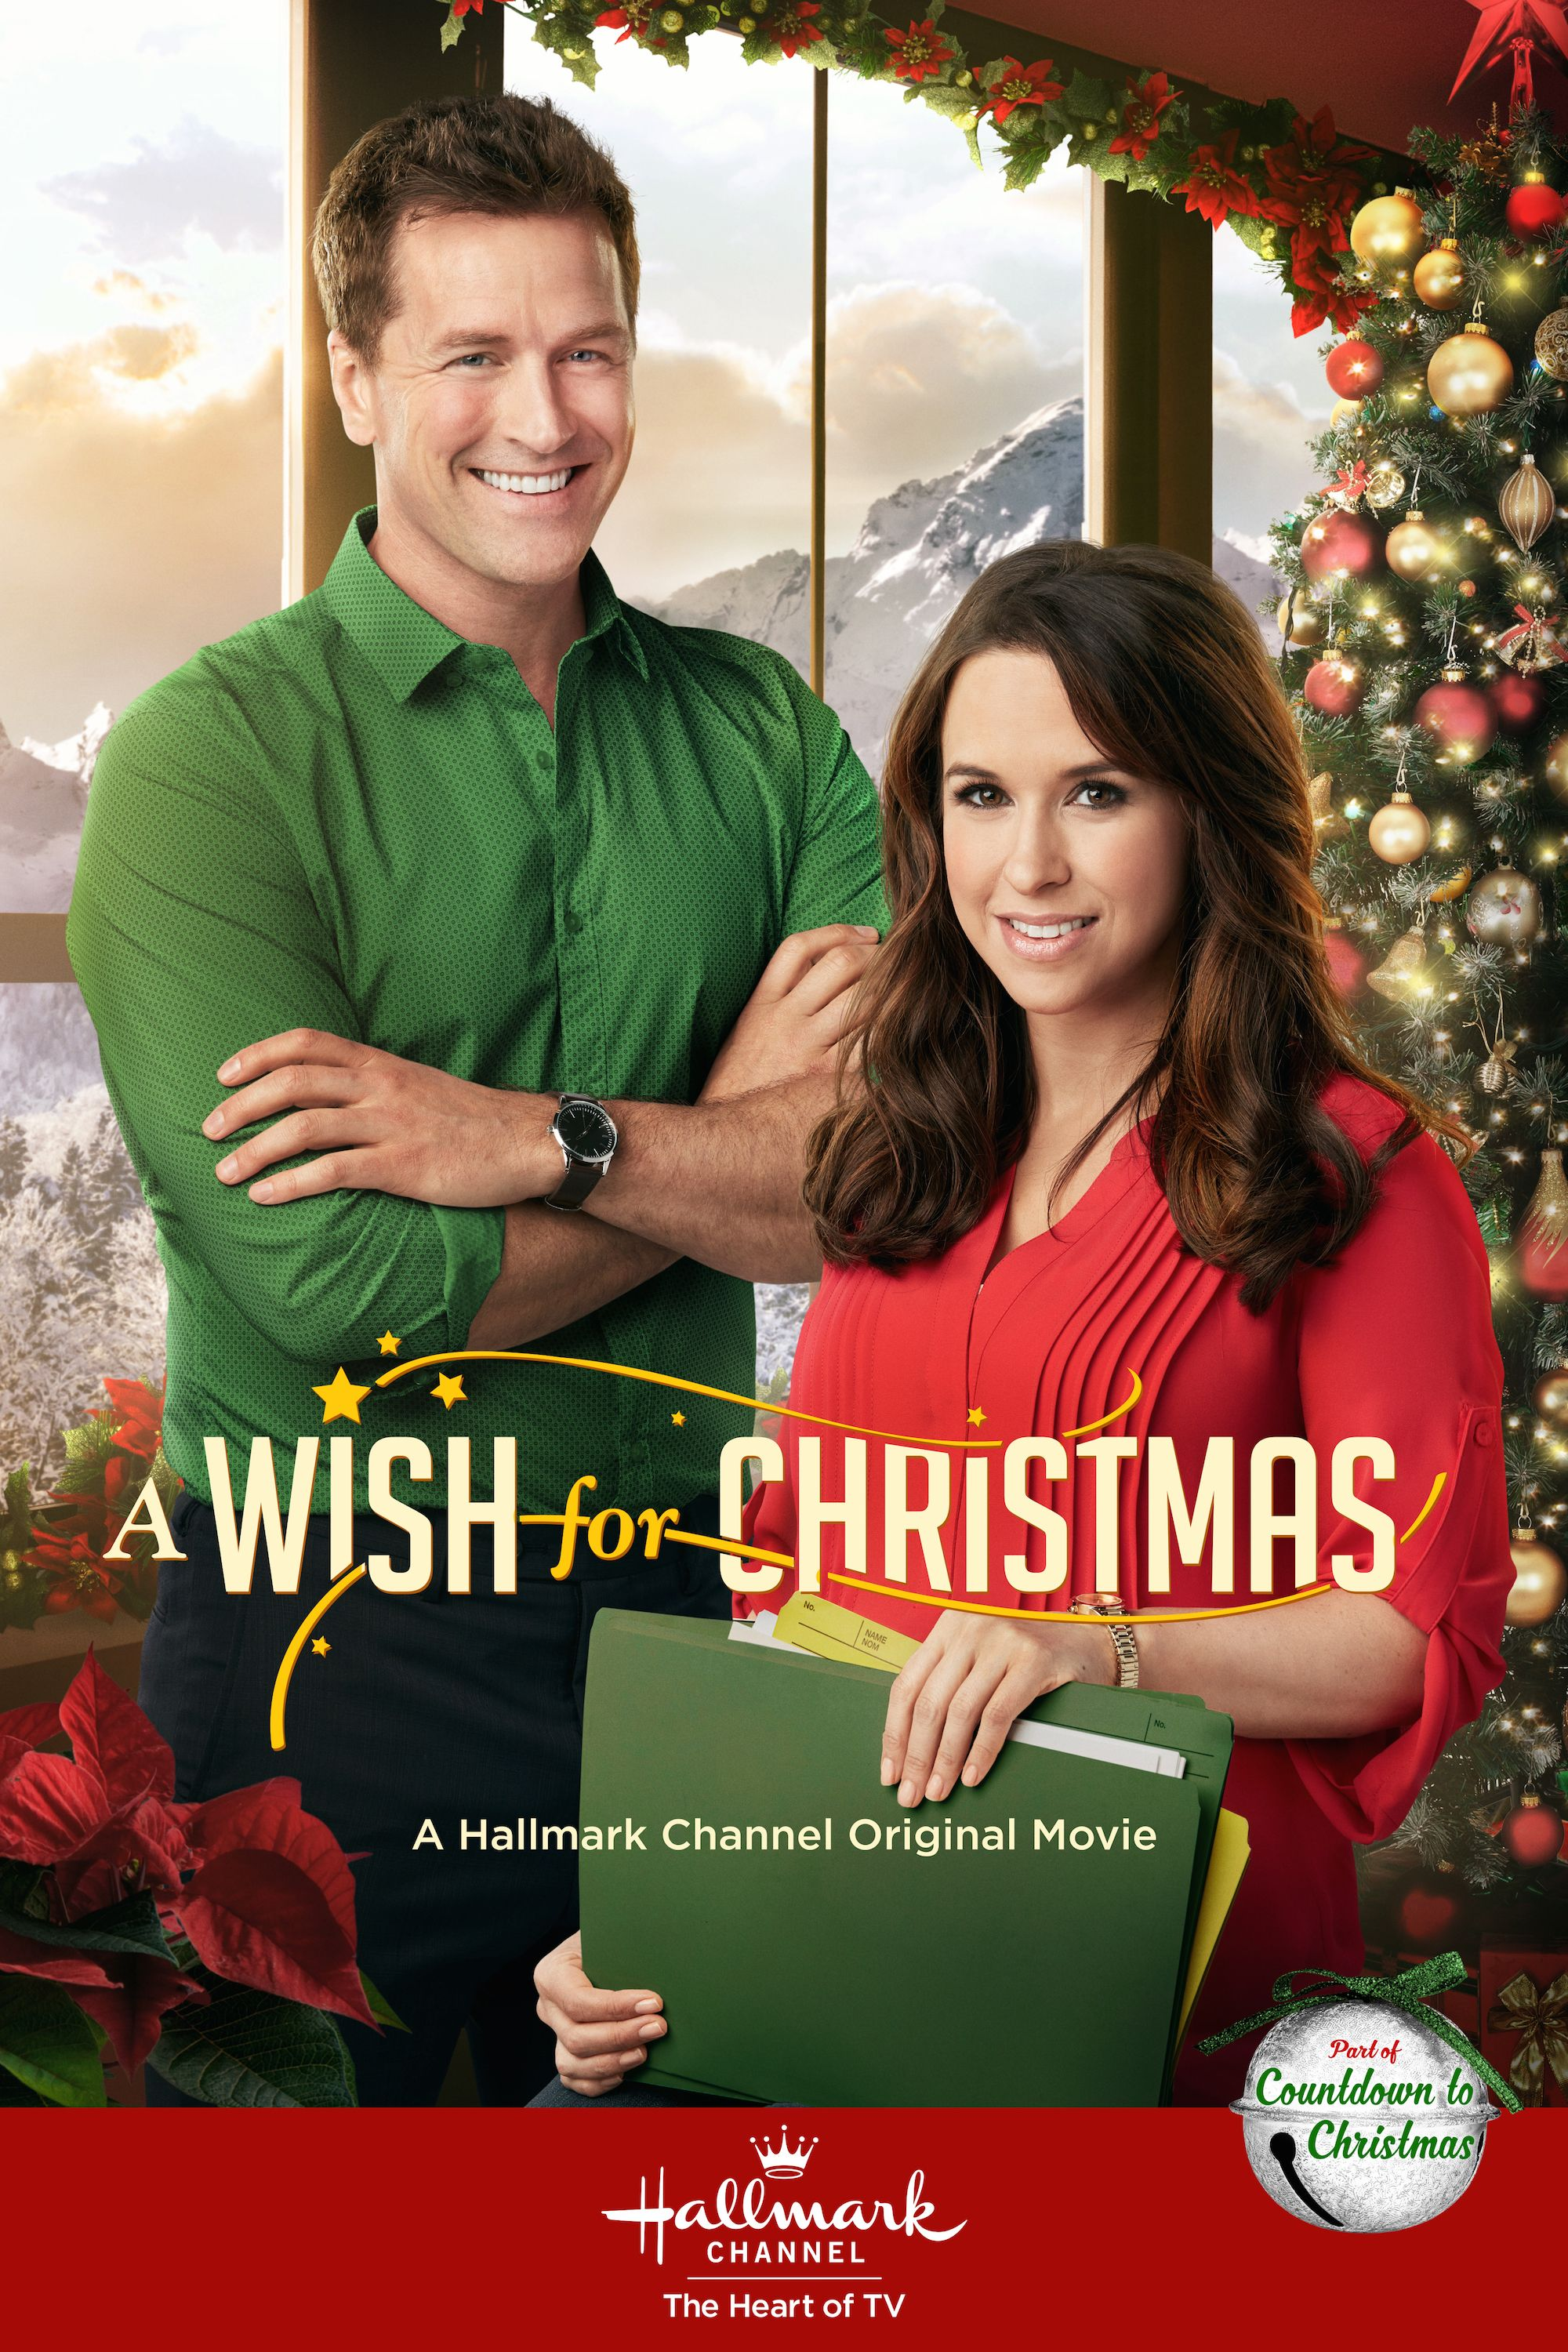 The Best Hallmark Christmas Movies Ranked Hallmark Christmas Movies Hallmark Channel Christmas Movies Christmas Movies